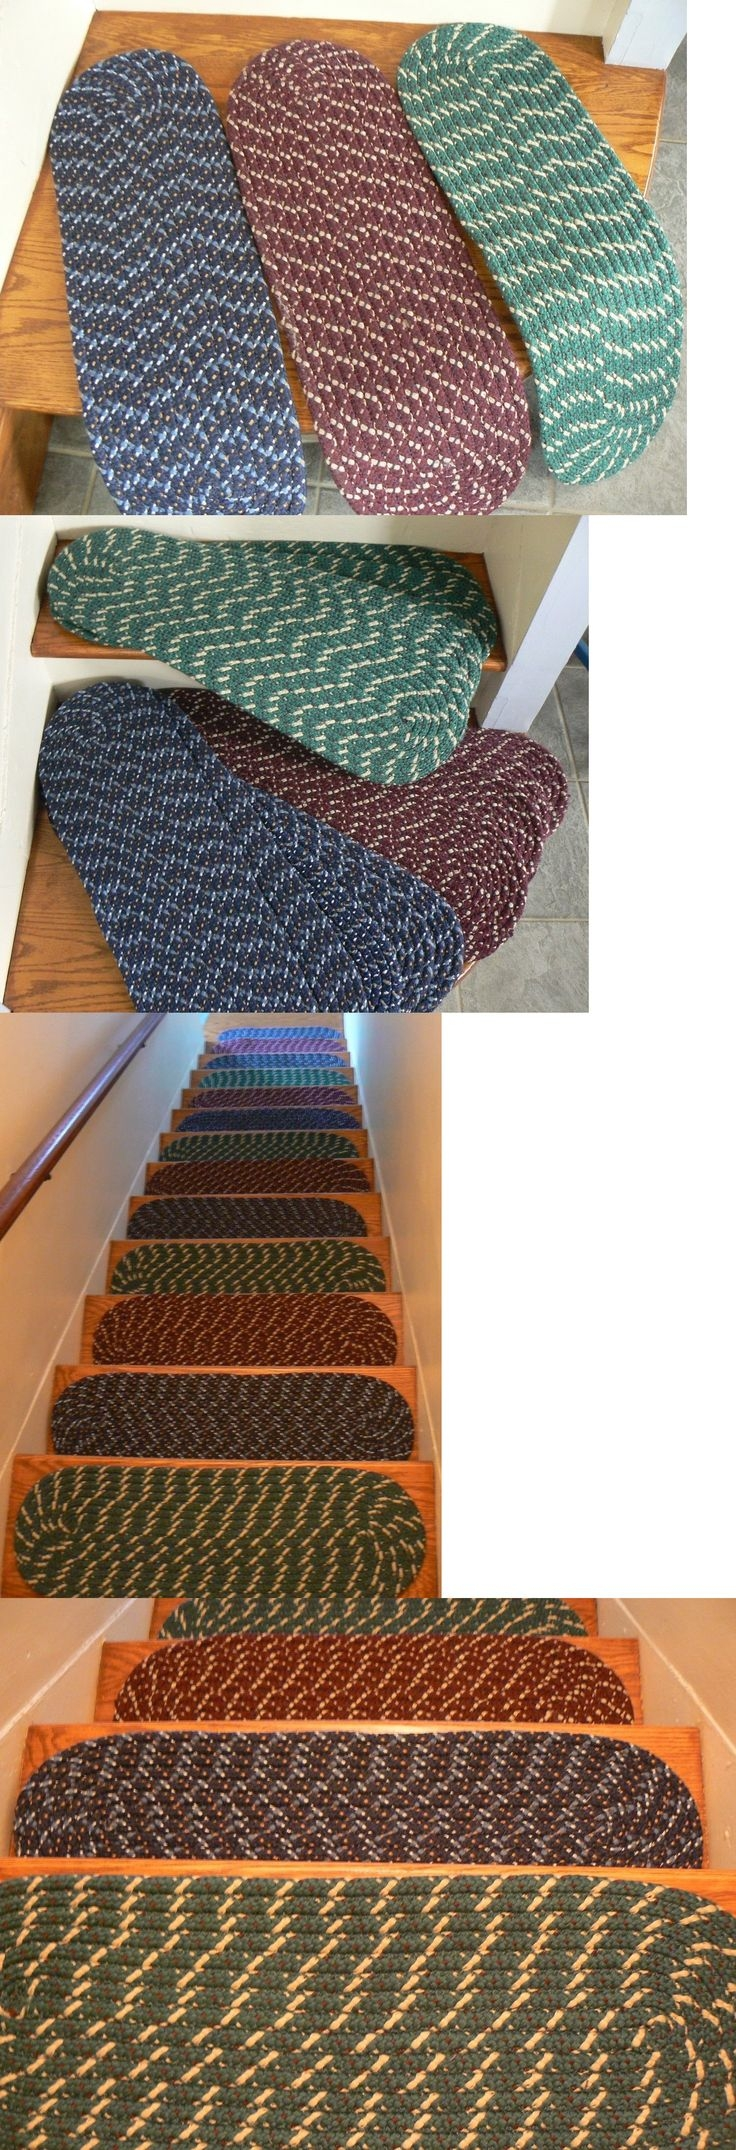 25 Best Stair Treads Ideas On Pinterest Wood Stair Treads Redo Pertaining To Carpet Stair Treads And Rugs 9× (View 19 of 20)